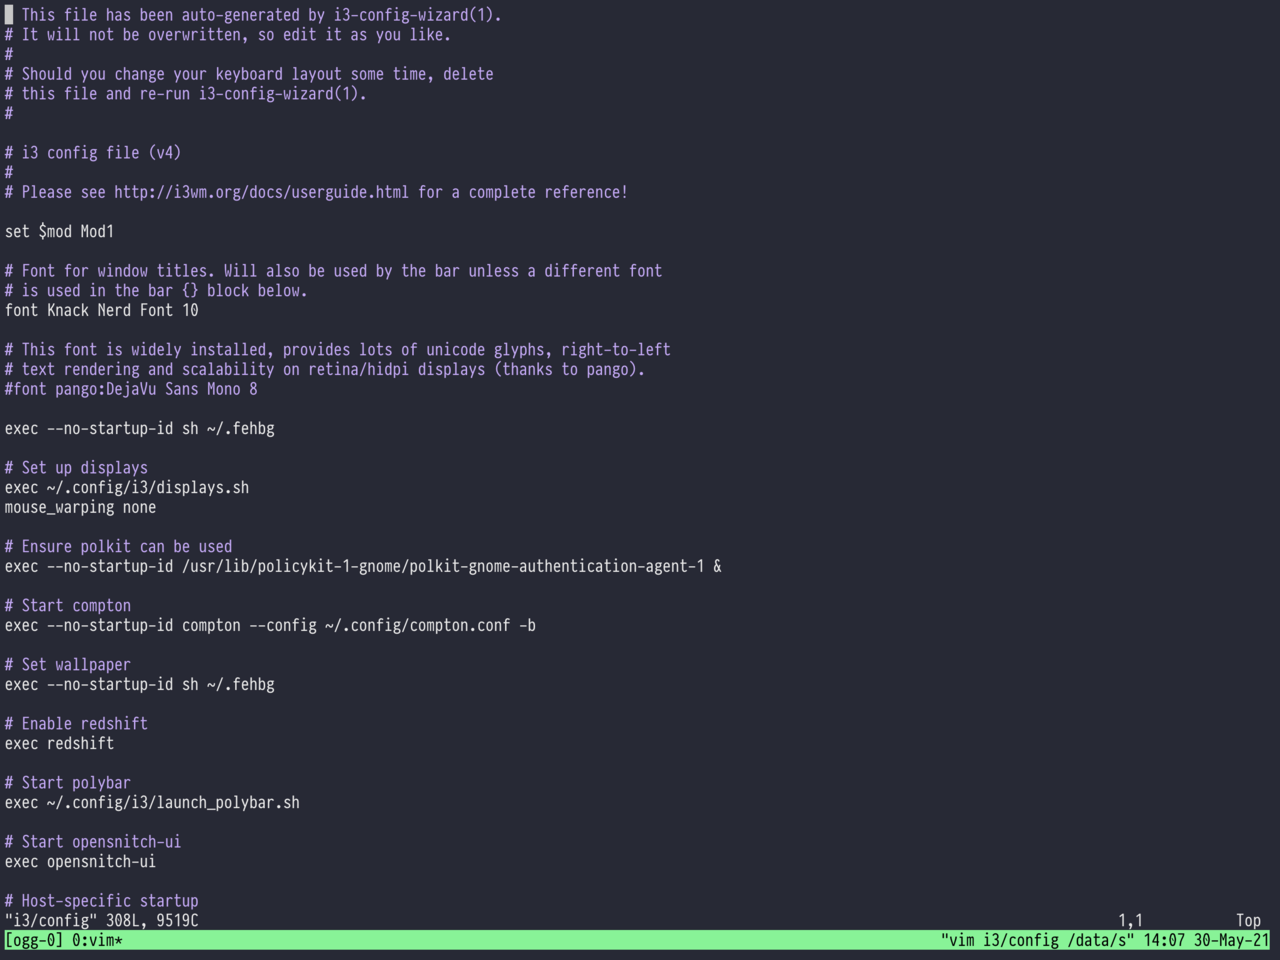 Blink into a tmux session over mosh